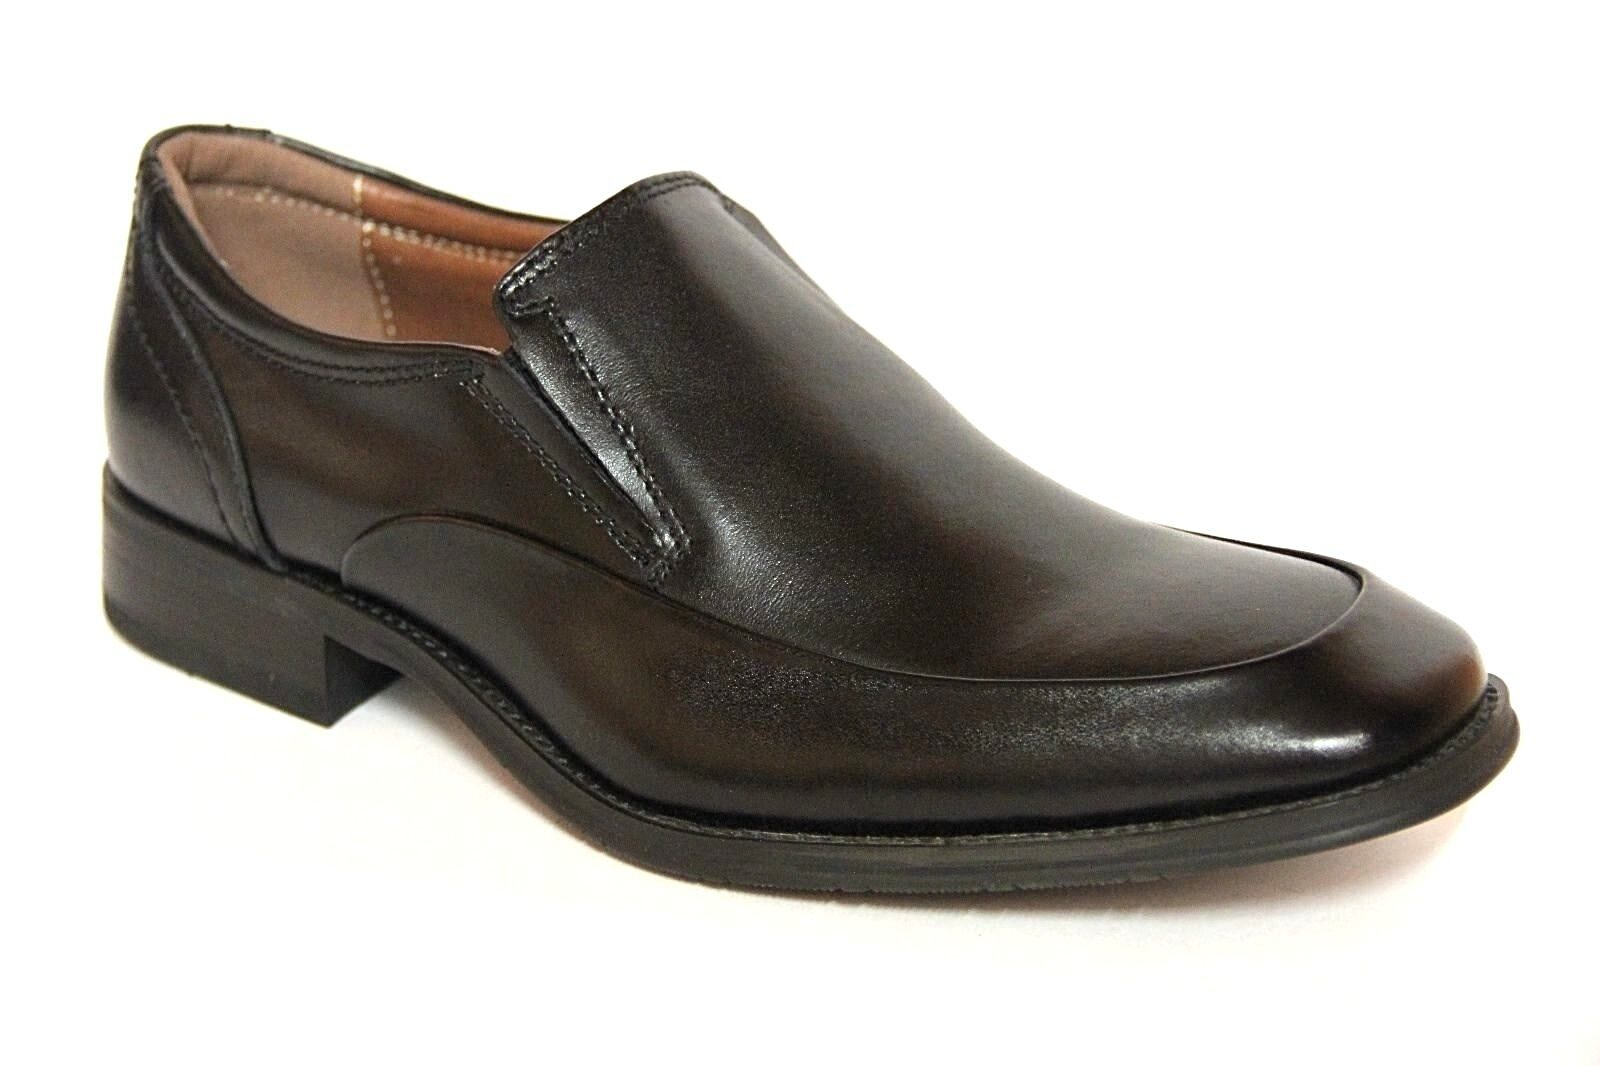 NXT MEN'S SLIP ON BLACK LEATHER DRESS LOAFER SHOES  N21036 1